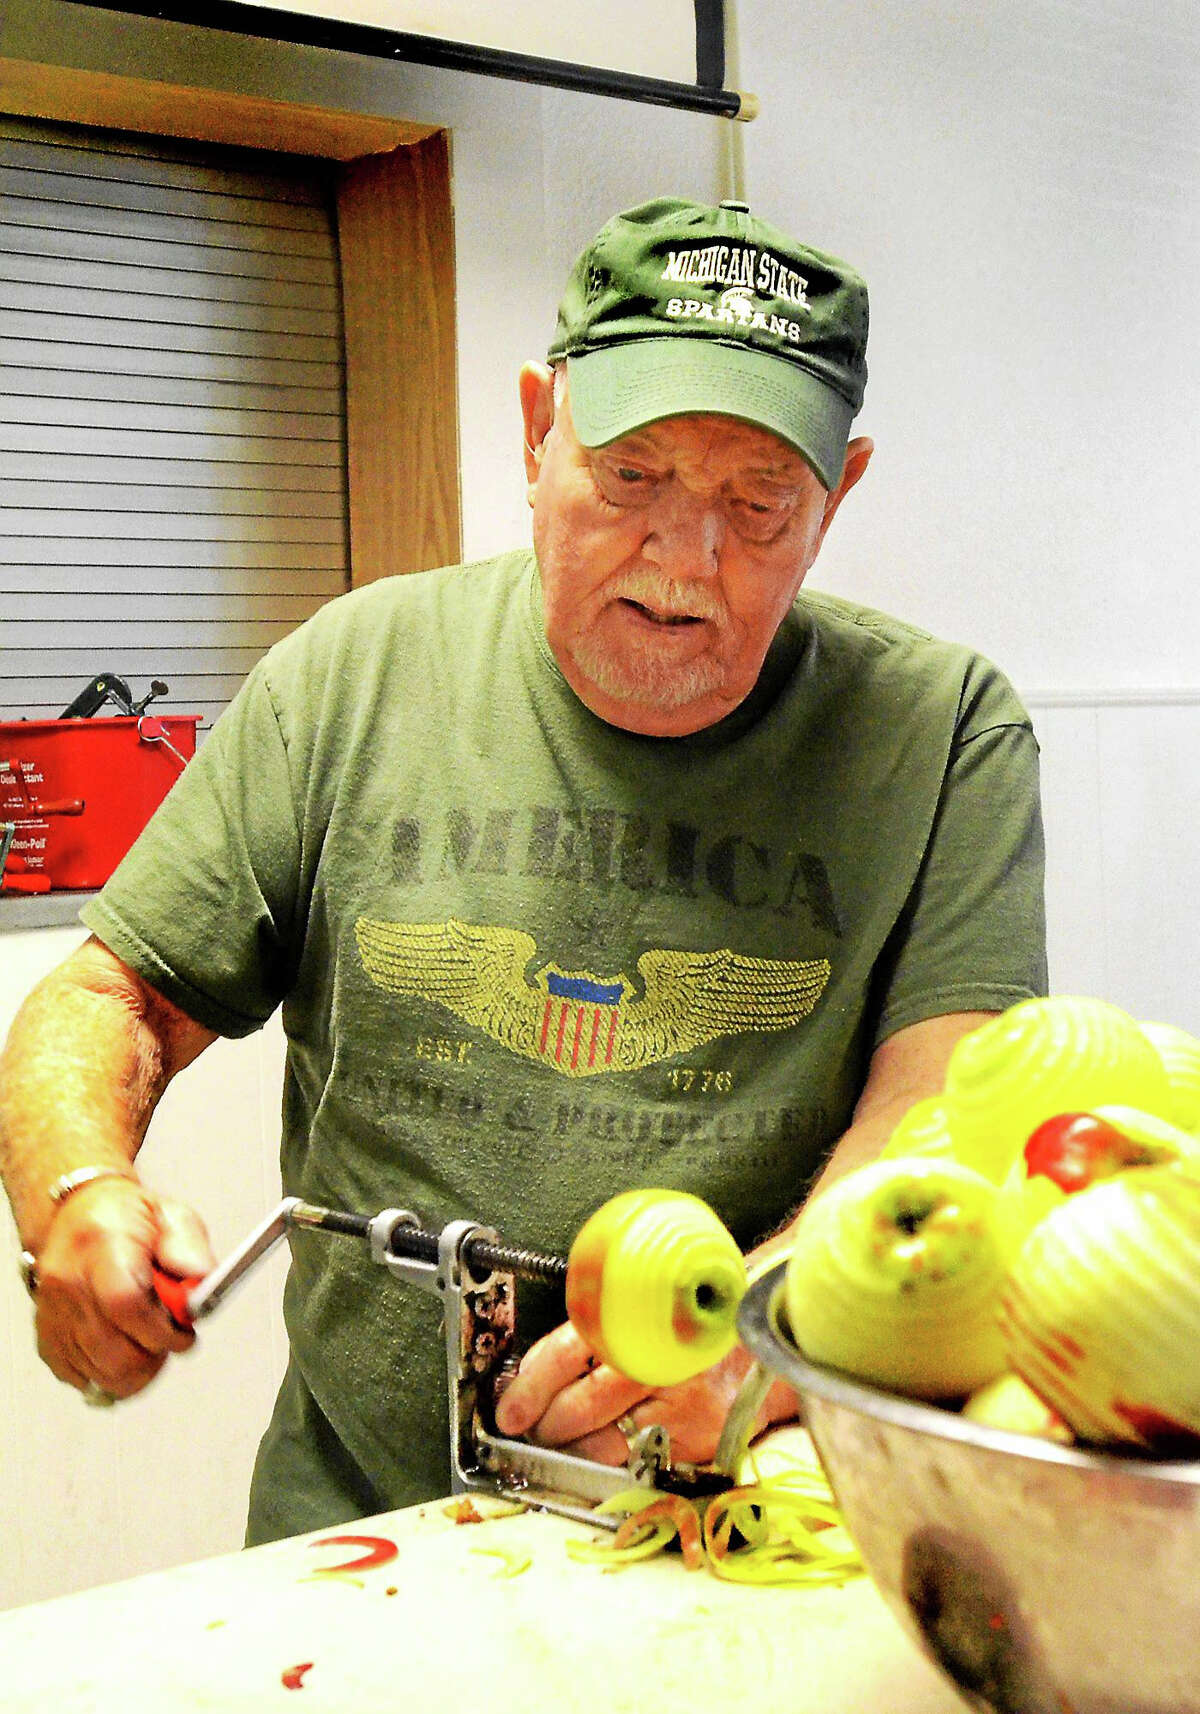 Doug Lee peels apples at the Waterford Recreation Center in Michigan in October. Volunteers created 1,200 apple pies to raise money for the Golden Age Club.